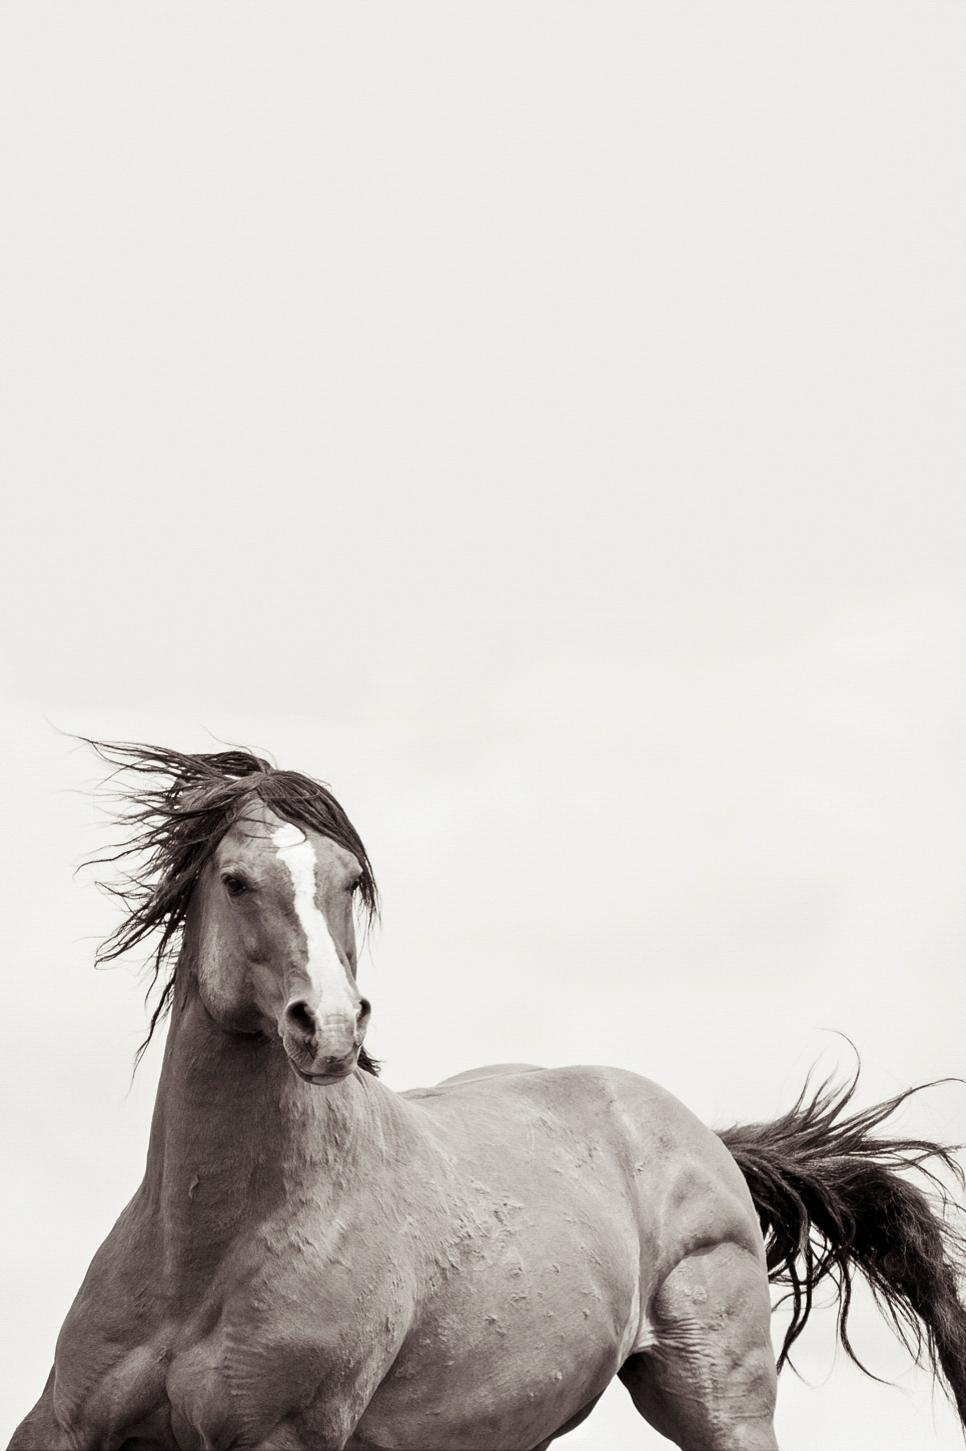 Kimerlee Curyl Valiant Wild Horses Black And White Photography For Sale At 1stdibs